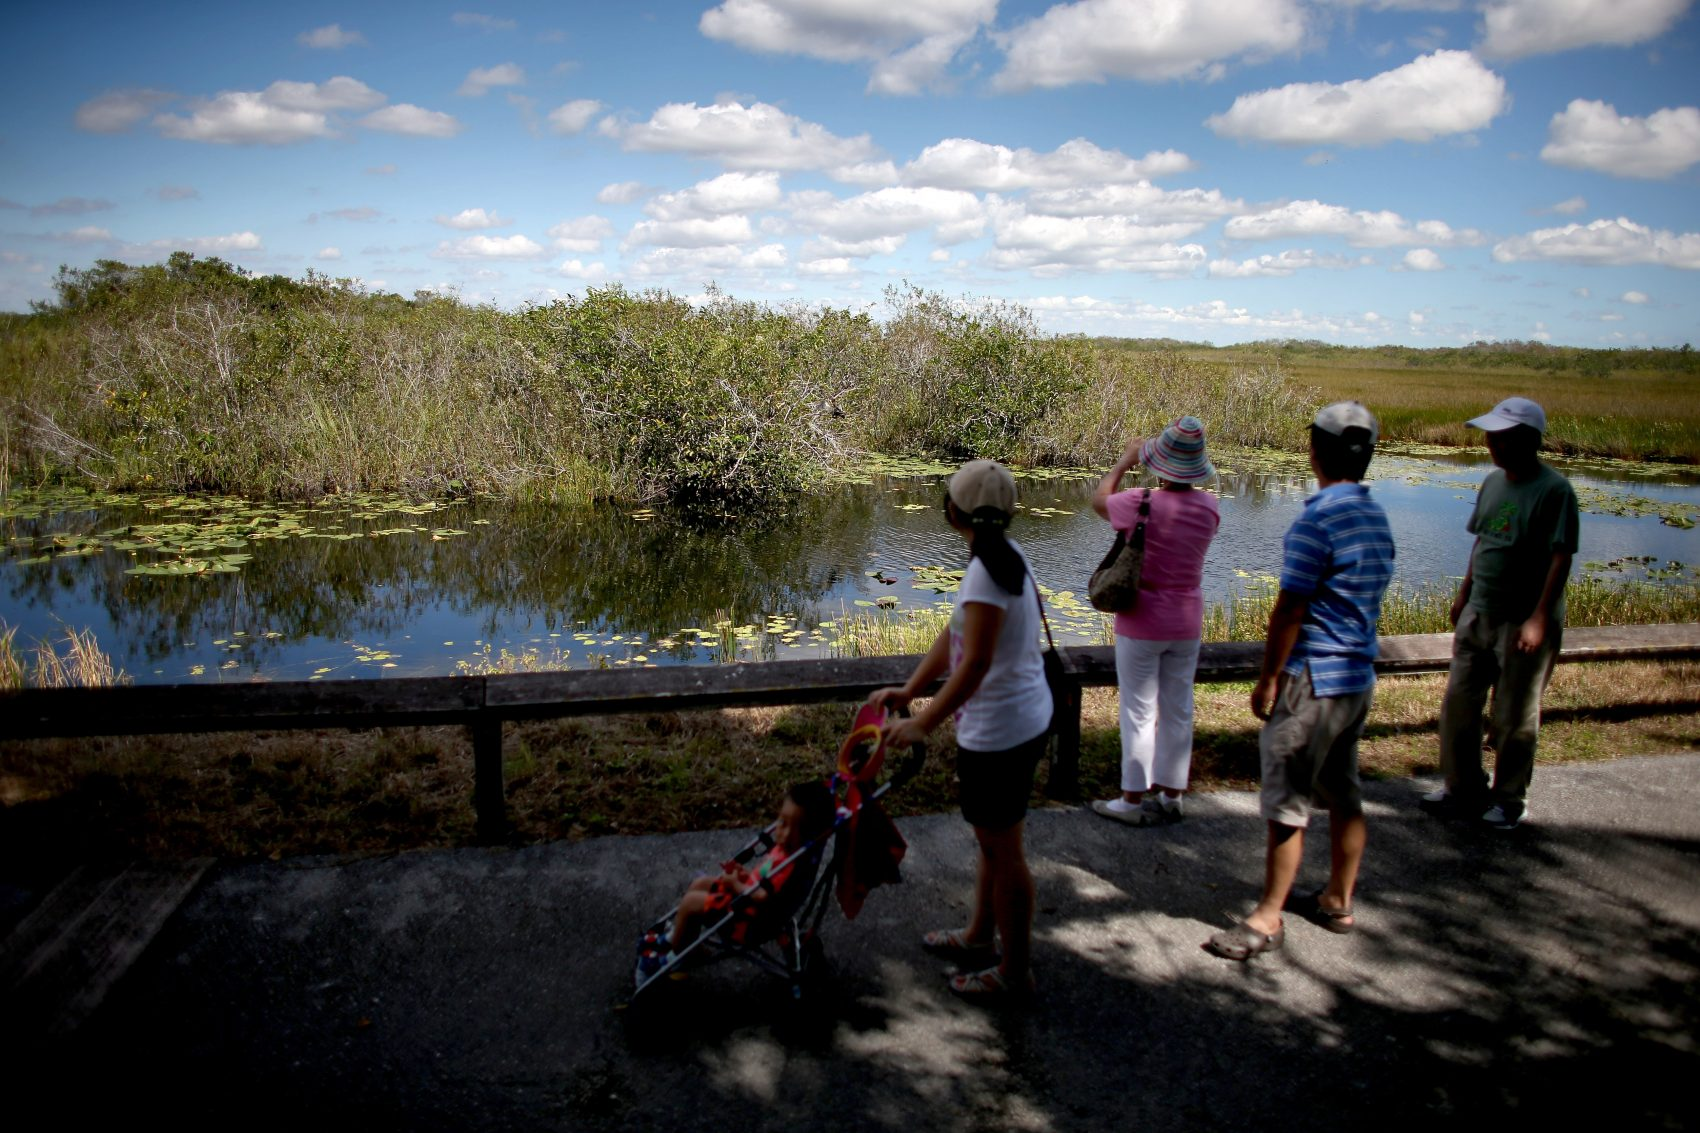 Visitors to the Everglades National Park enjoy the views on Oct. 17, 2013 in Miami, Florida. (Joe Raedle/Getty Images)